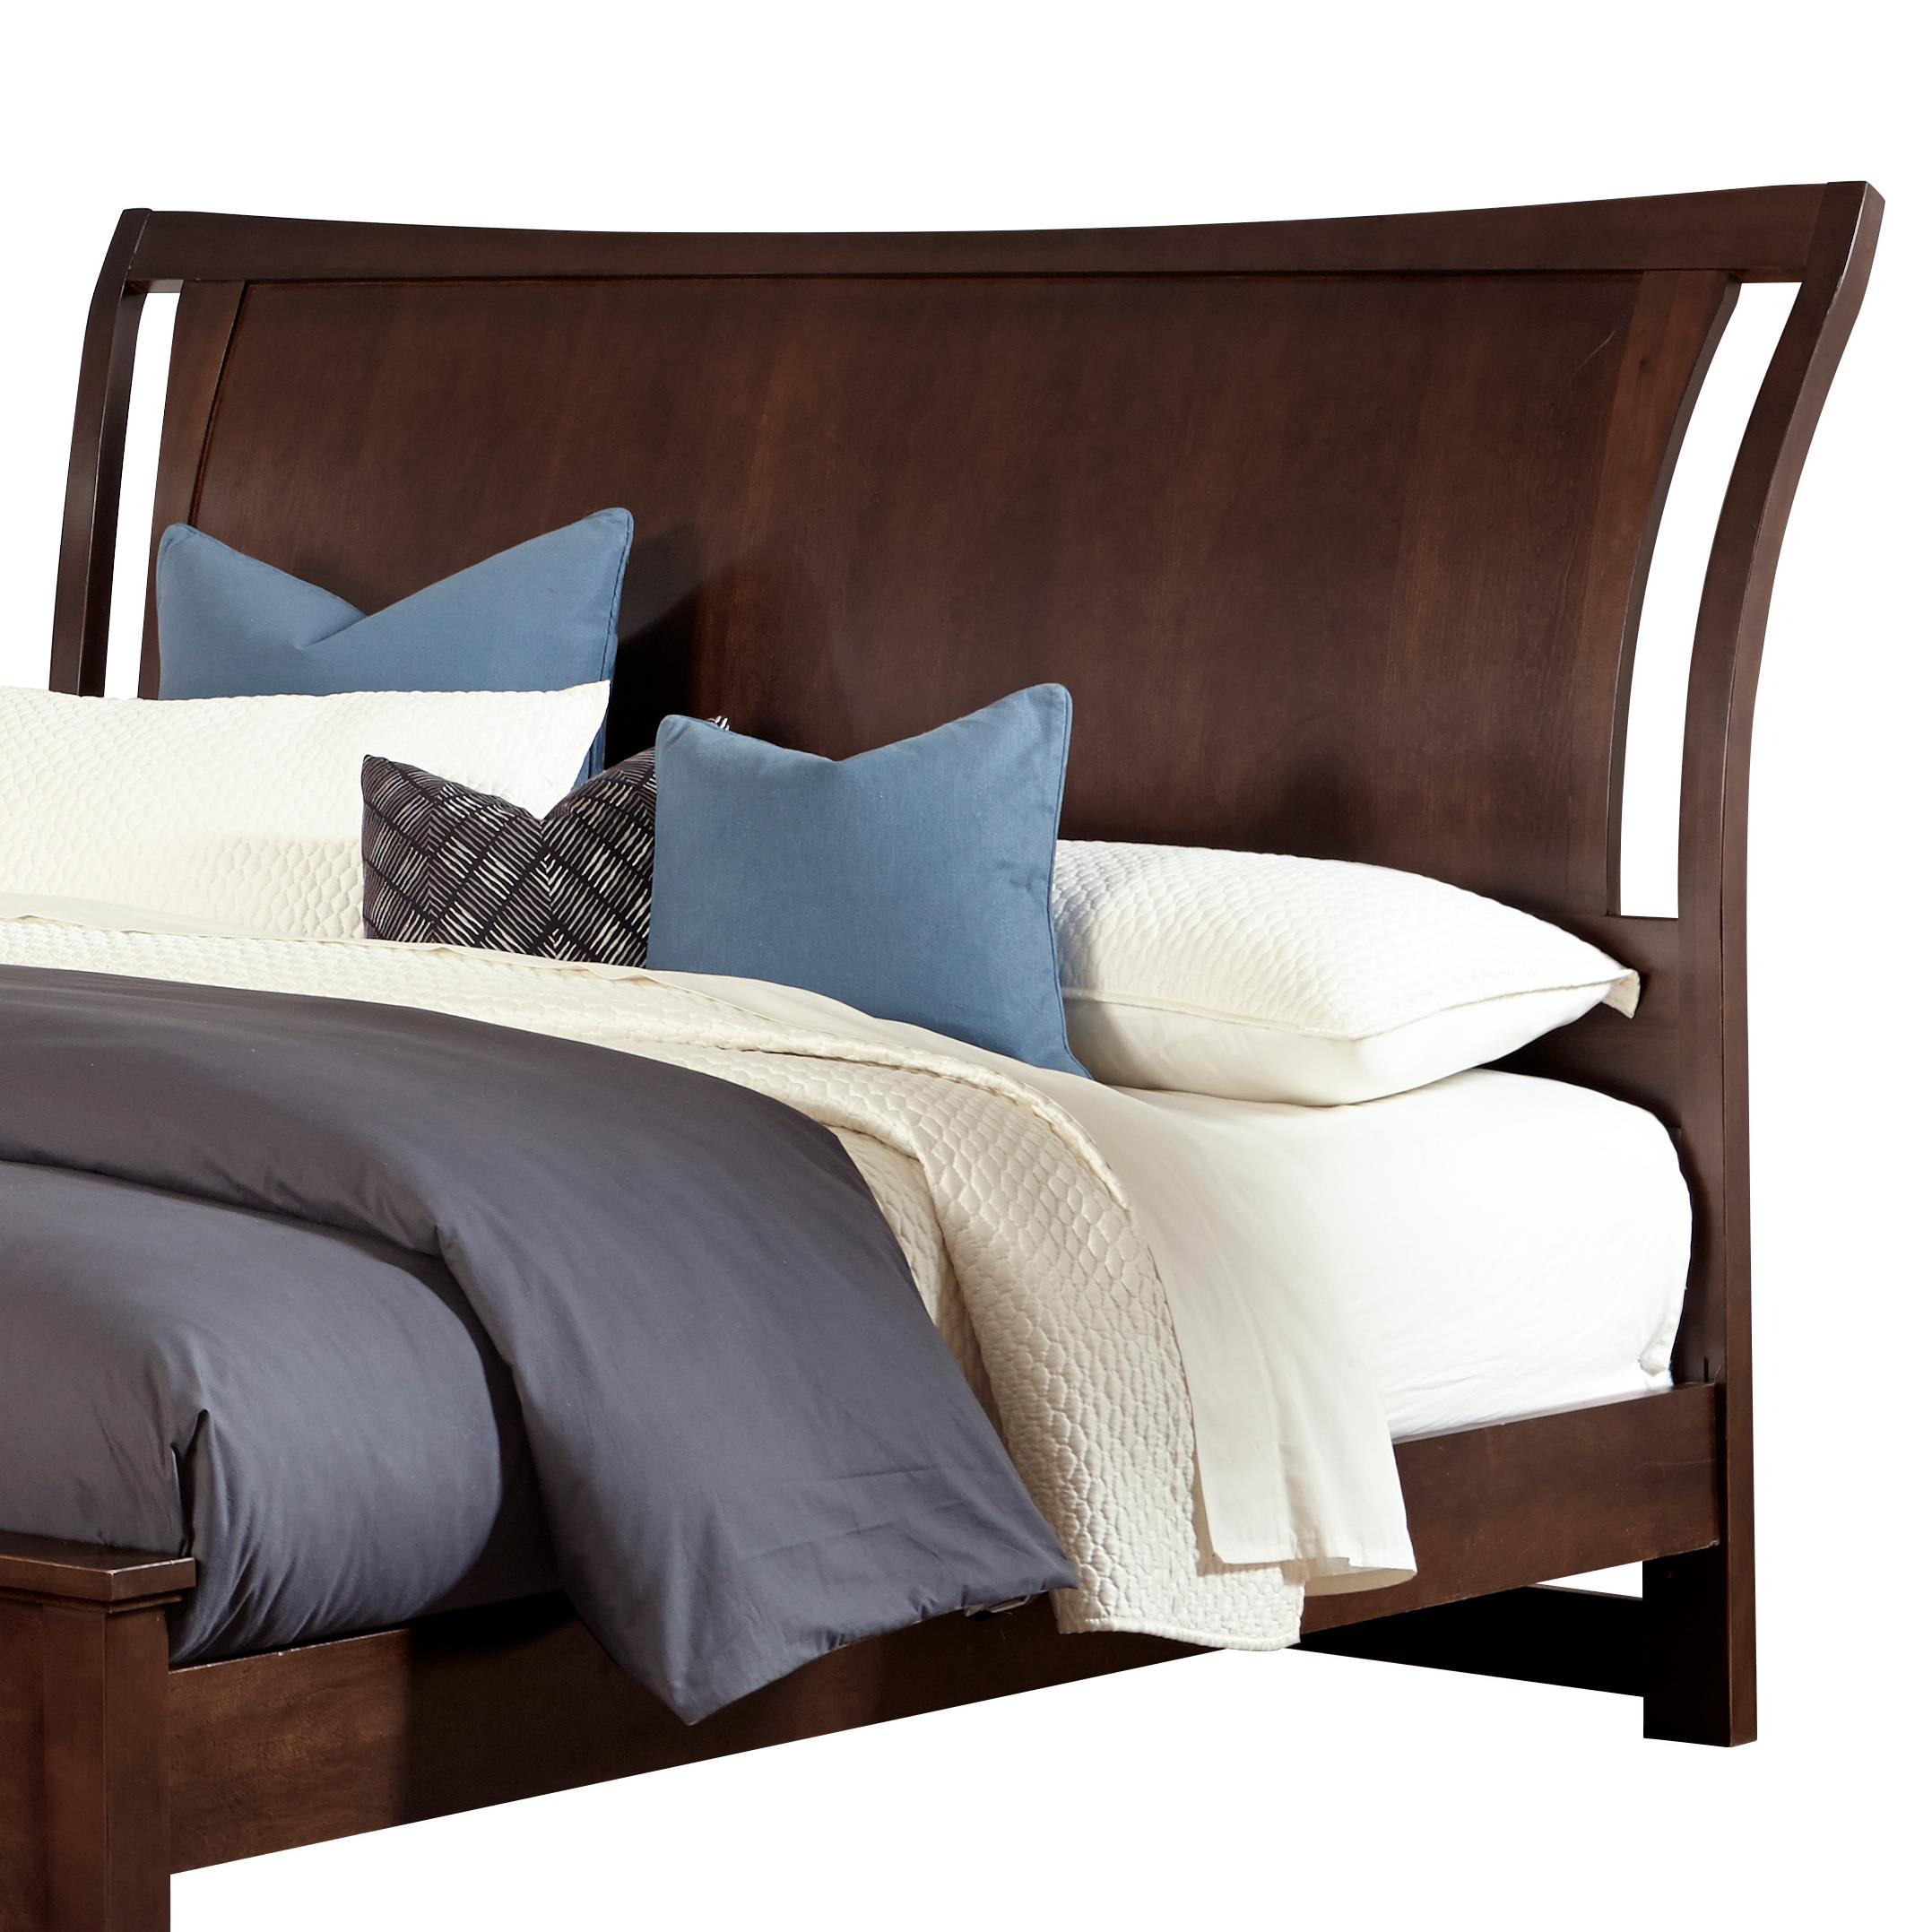 Vaughan Bassett Commentary Full Wing Headboard - Item Number: 392-441